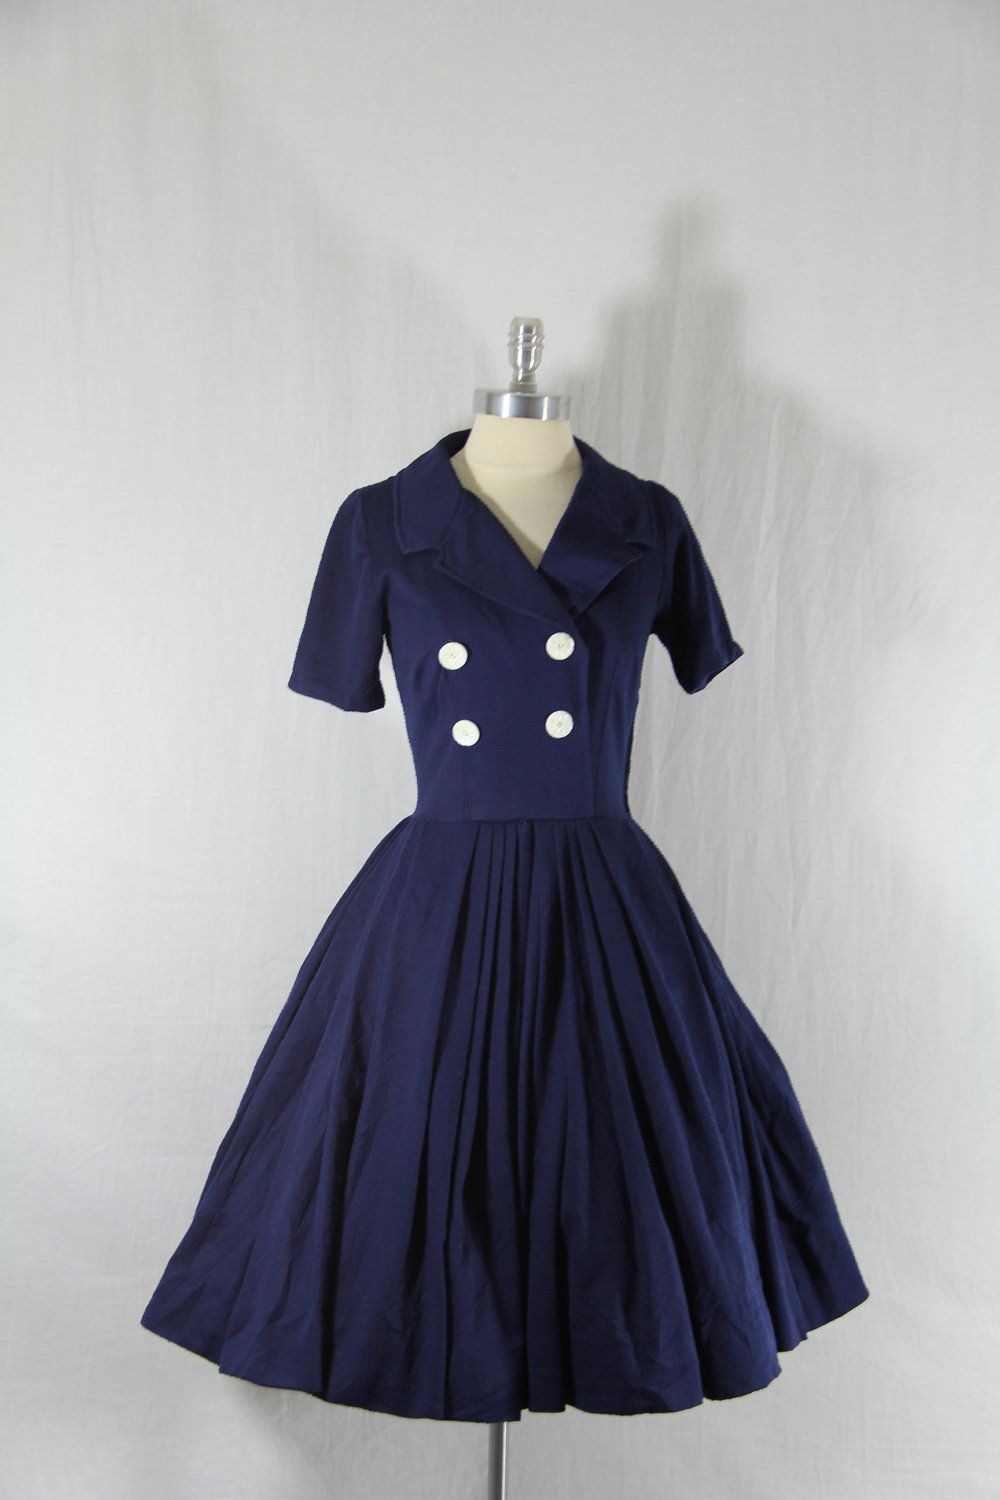 S vintage dress navy blue full skirt sailor inspired vintage